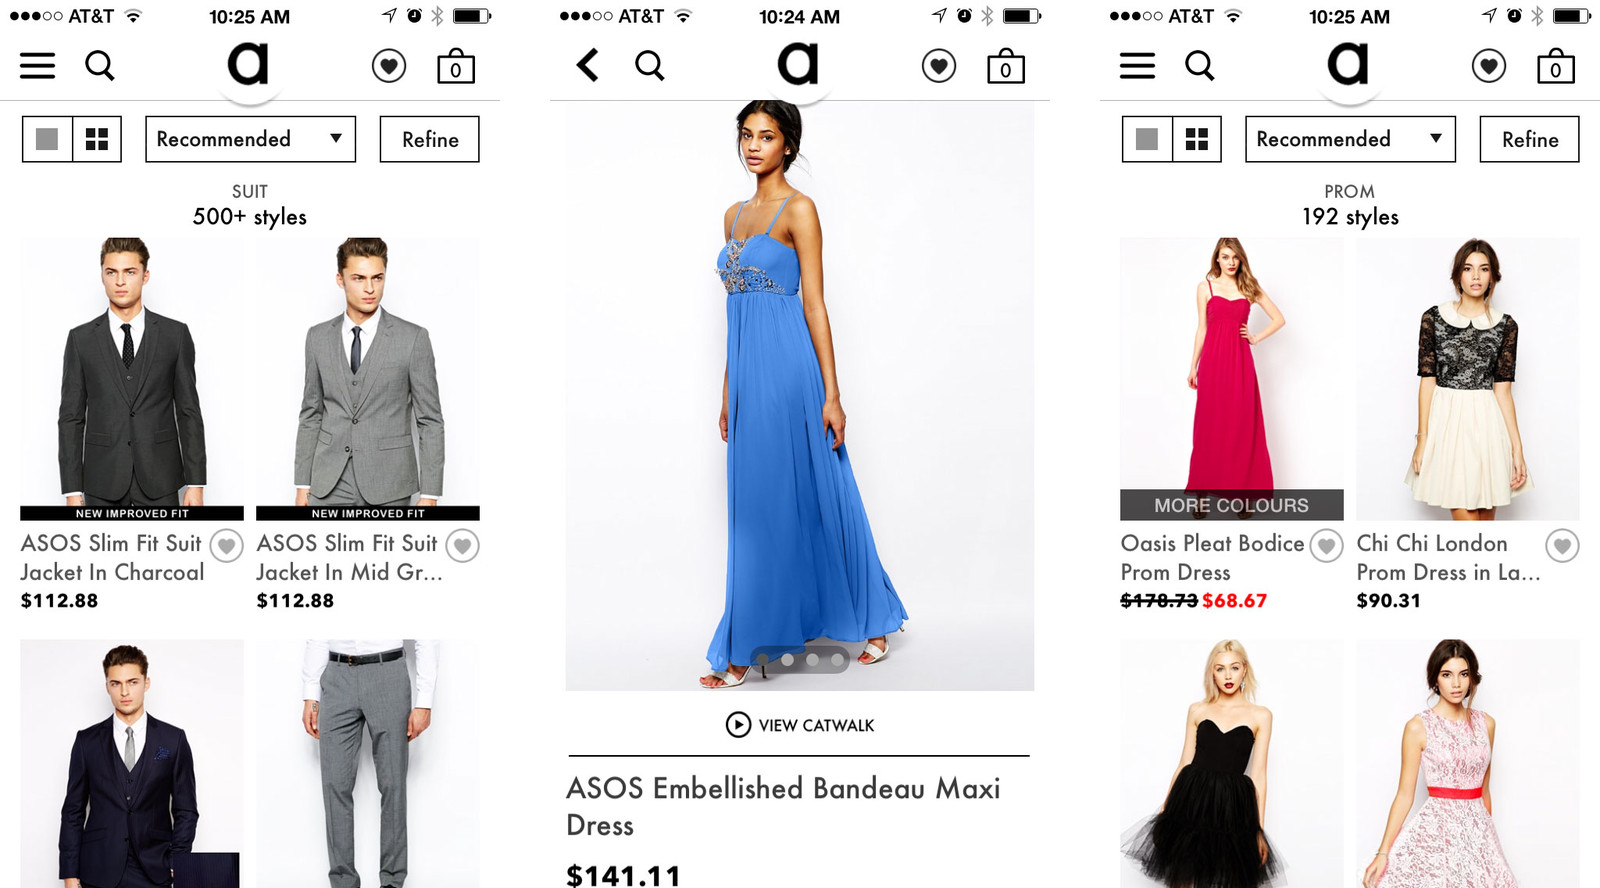 Best prom apps for iPhone: ASOS